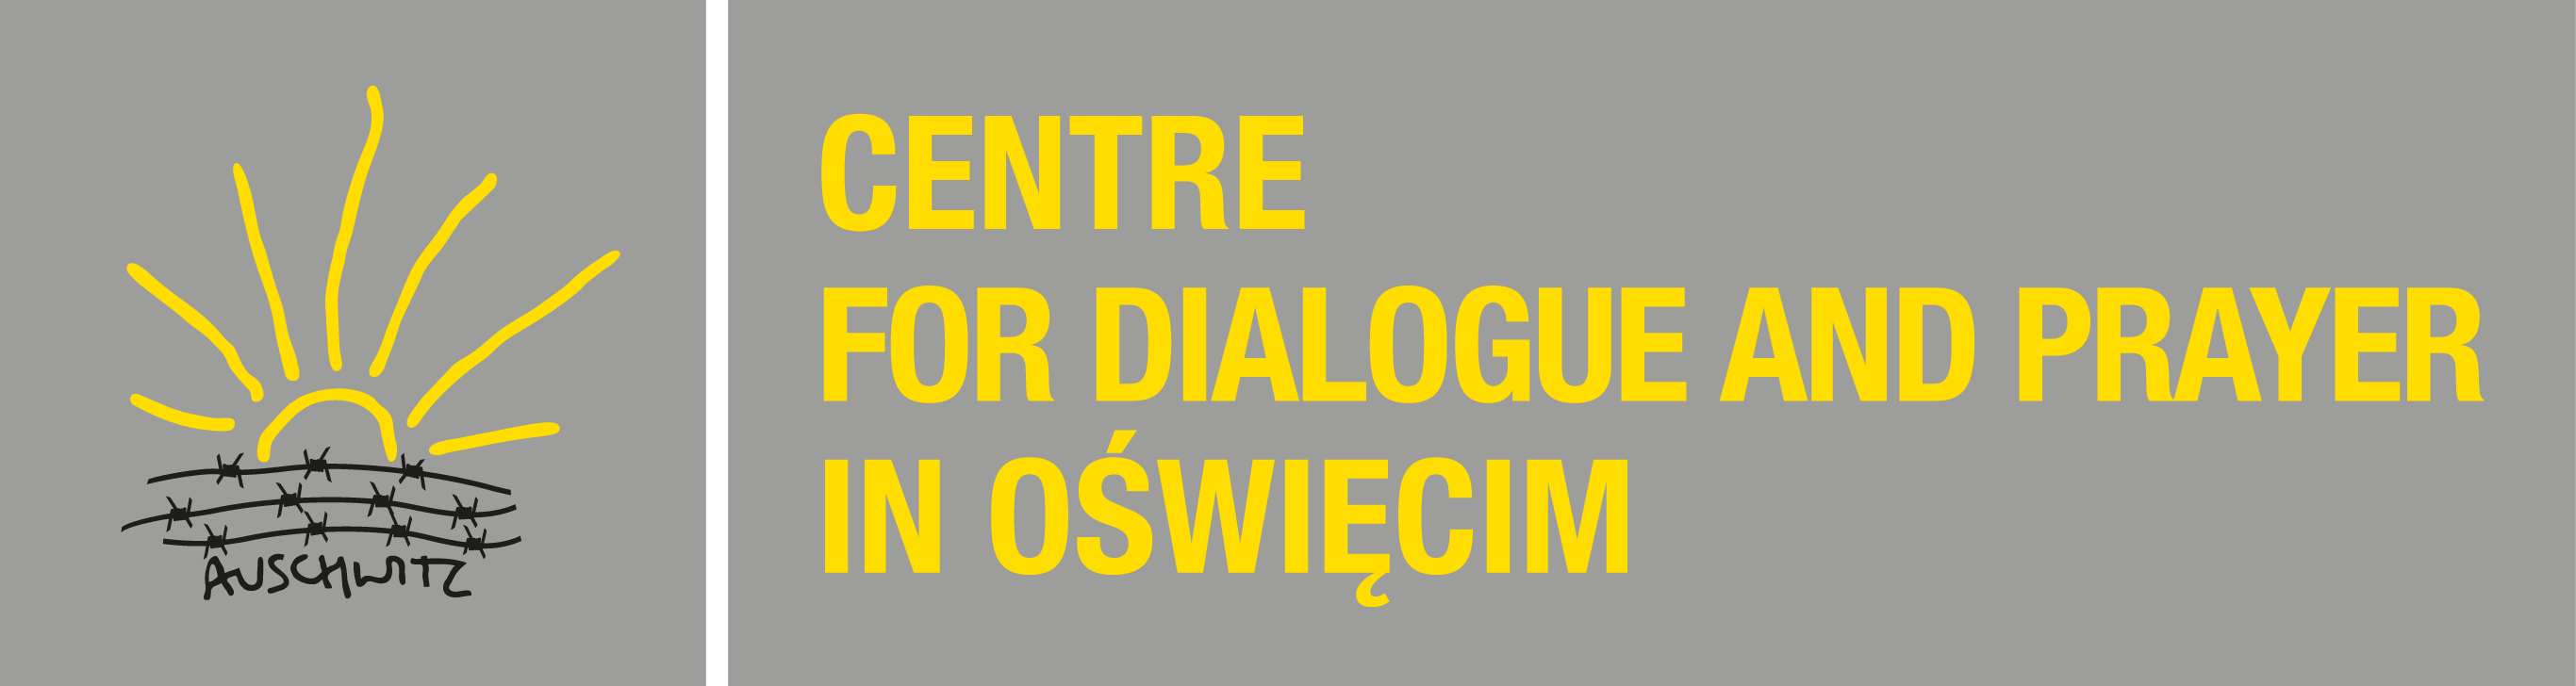 Centre for Dialogue and Prayer in Oswiecim